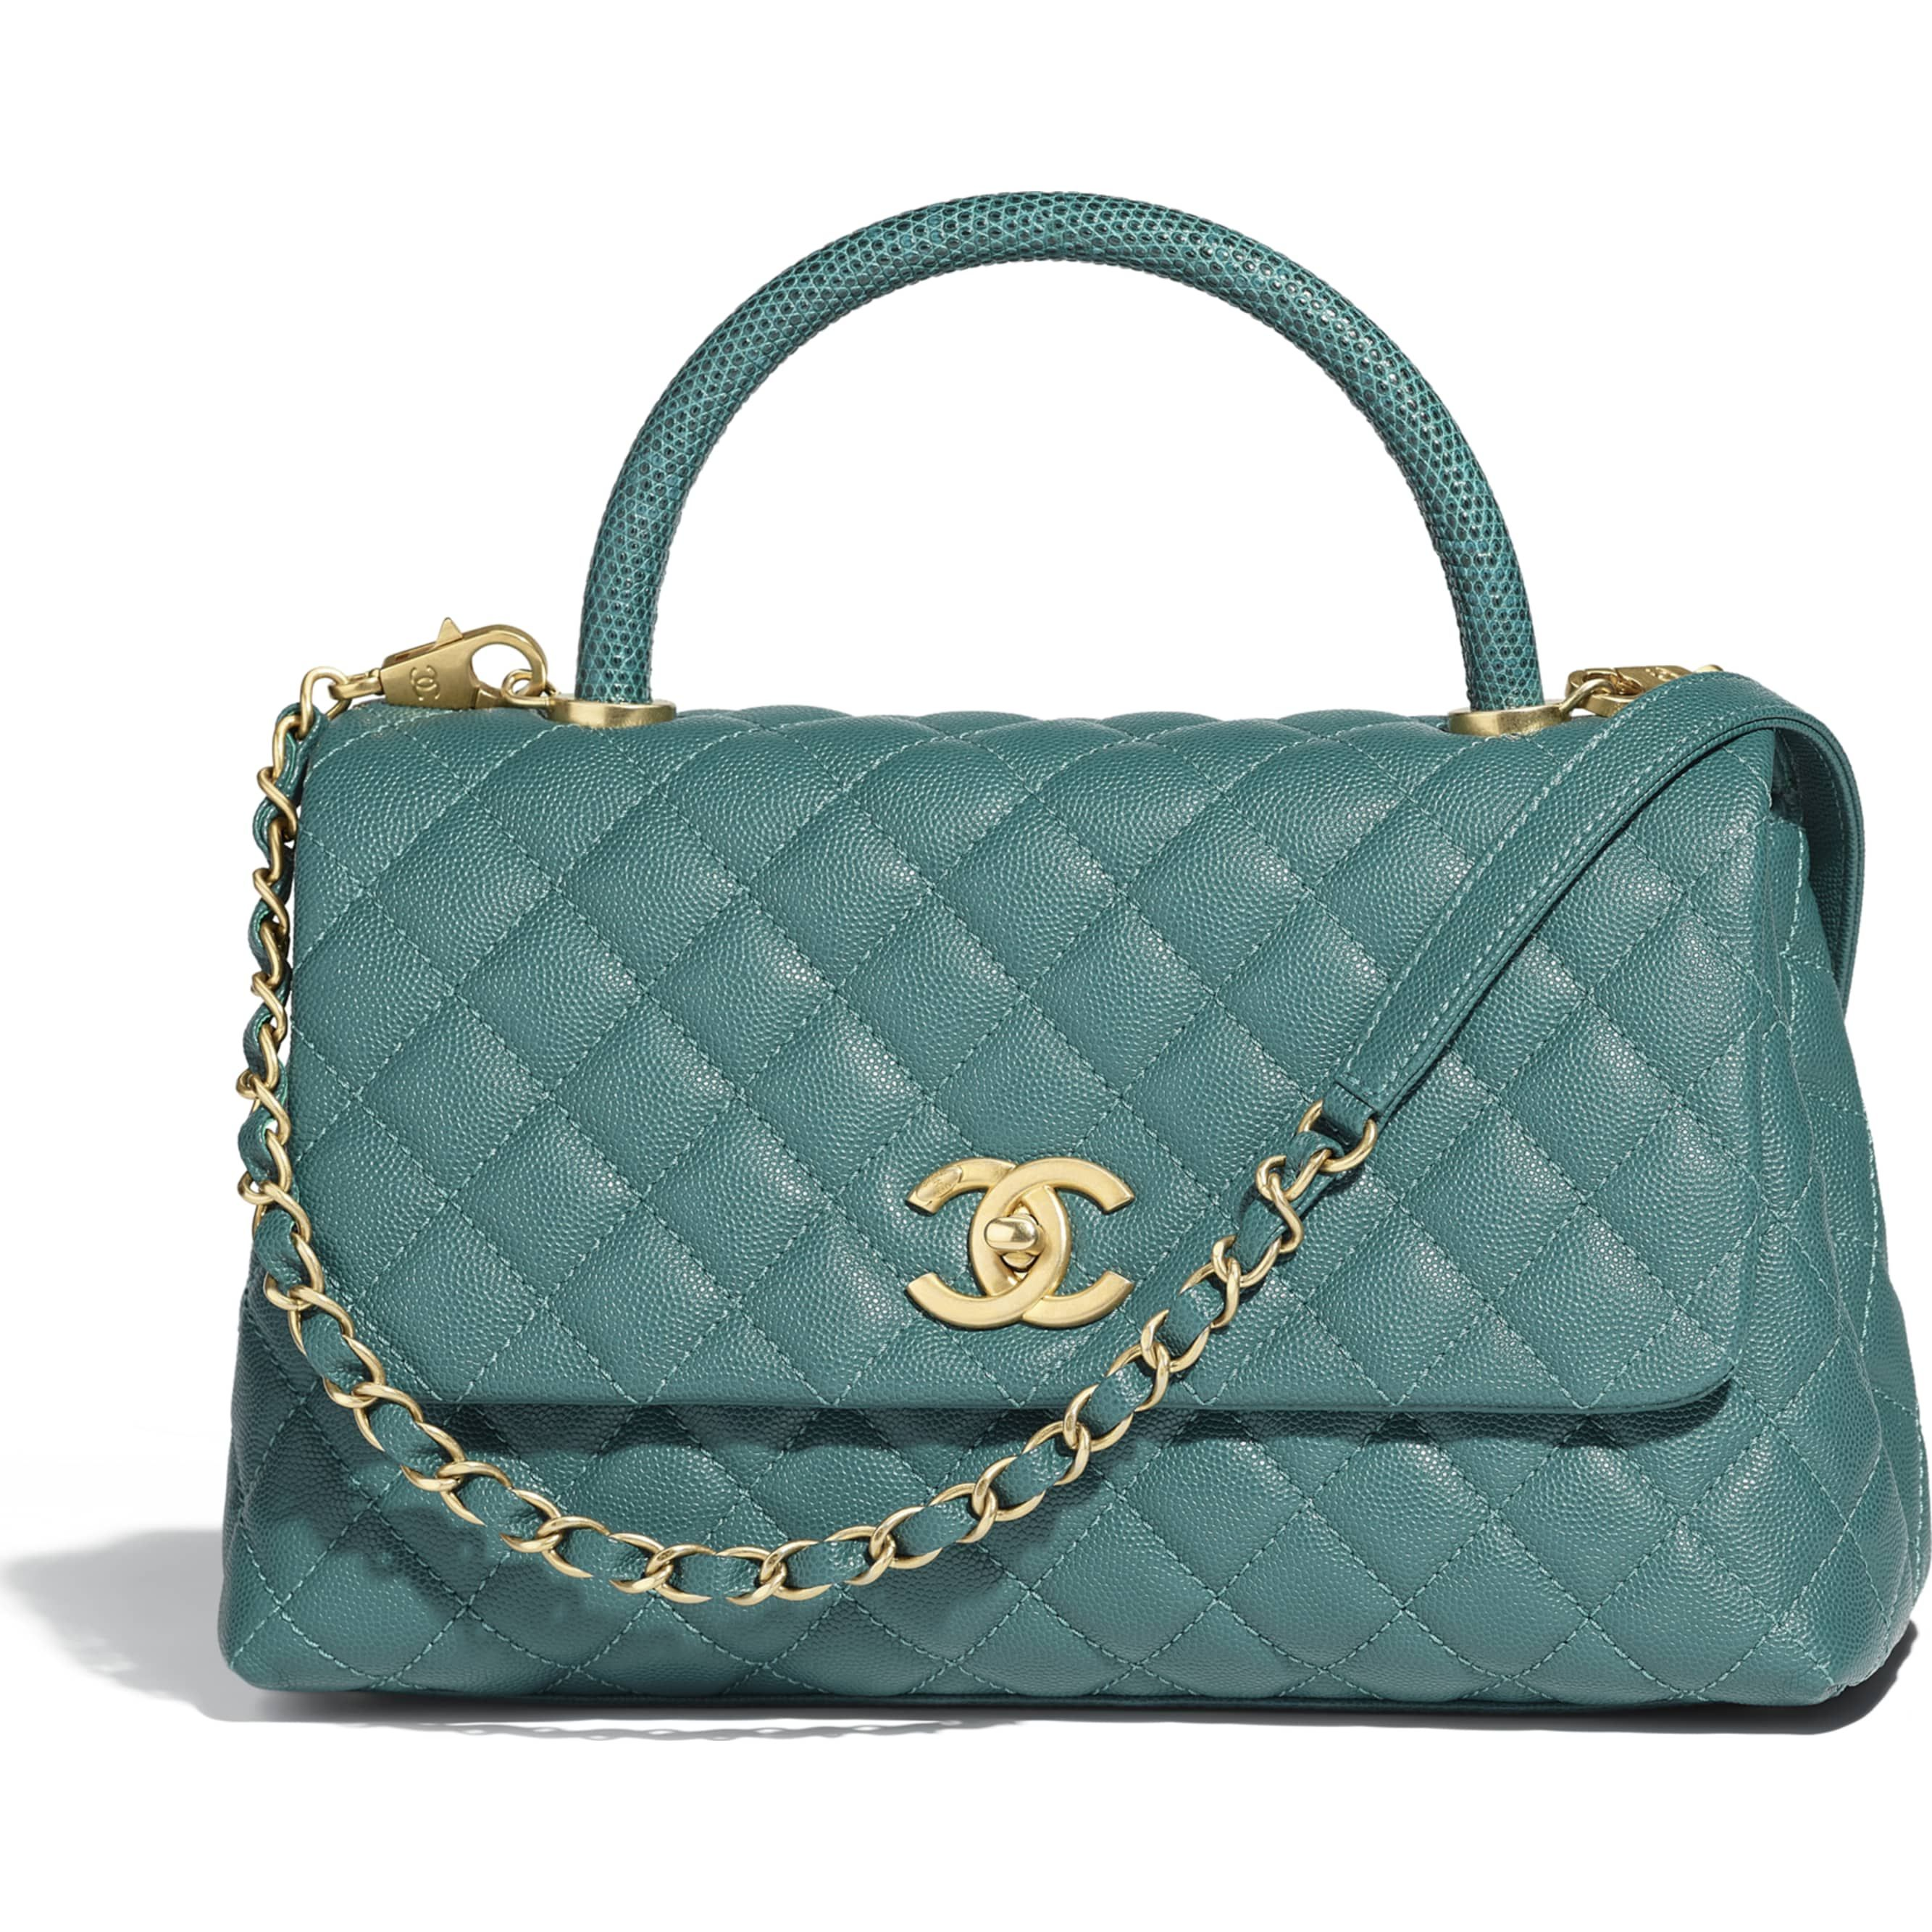 6ce8eb0c Calfskin, Lizard & Gold-Tone Metal Green Flap Bag with Top Handle ...